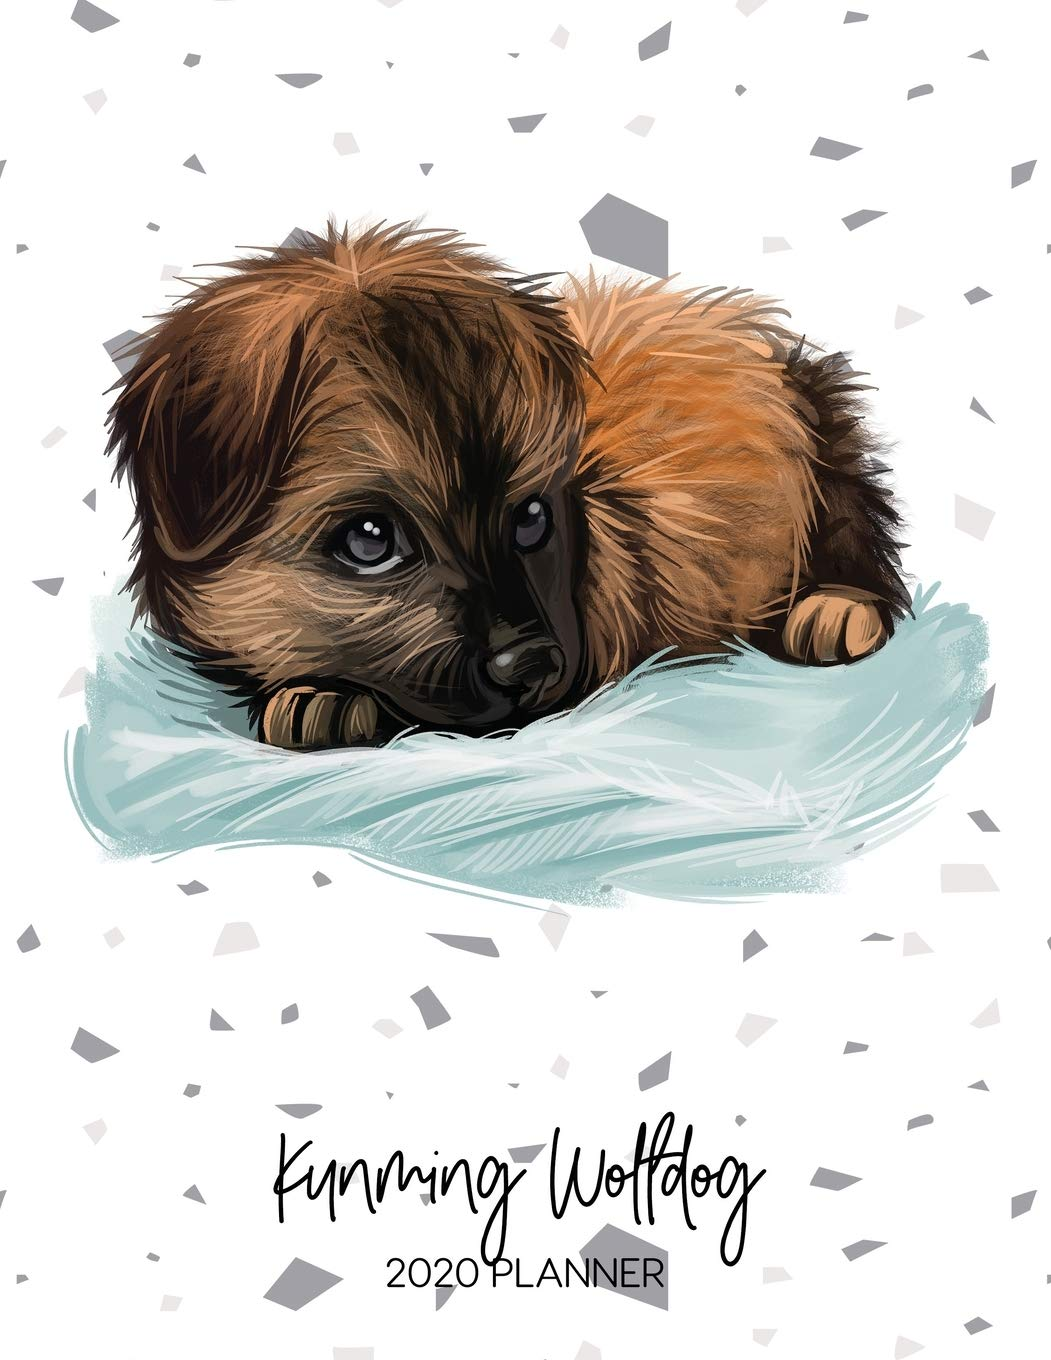 Kunming Wolfdog 2020 Planner Dated Weekly Diary With To Do Notes Dog Quotes Awesome Calendar Planners For Dog Owners Pedigree Puppy Breed Books Topwuff 9781710942262 Amazon Com Books The breed was developed from a pool of wolfdogs, civil dogs and shepherd dogs. amazon com